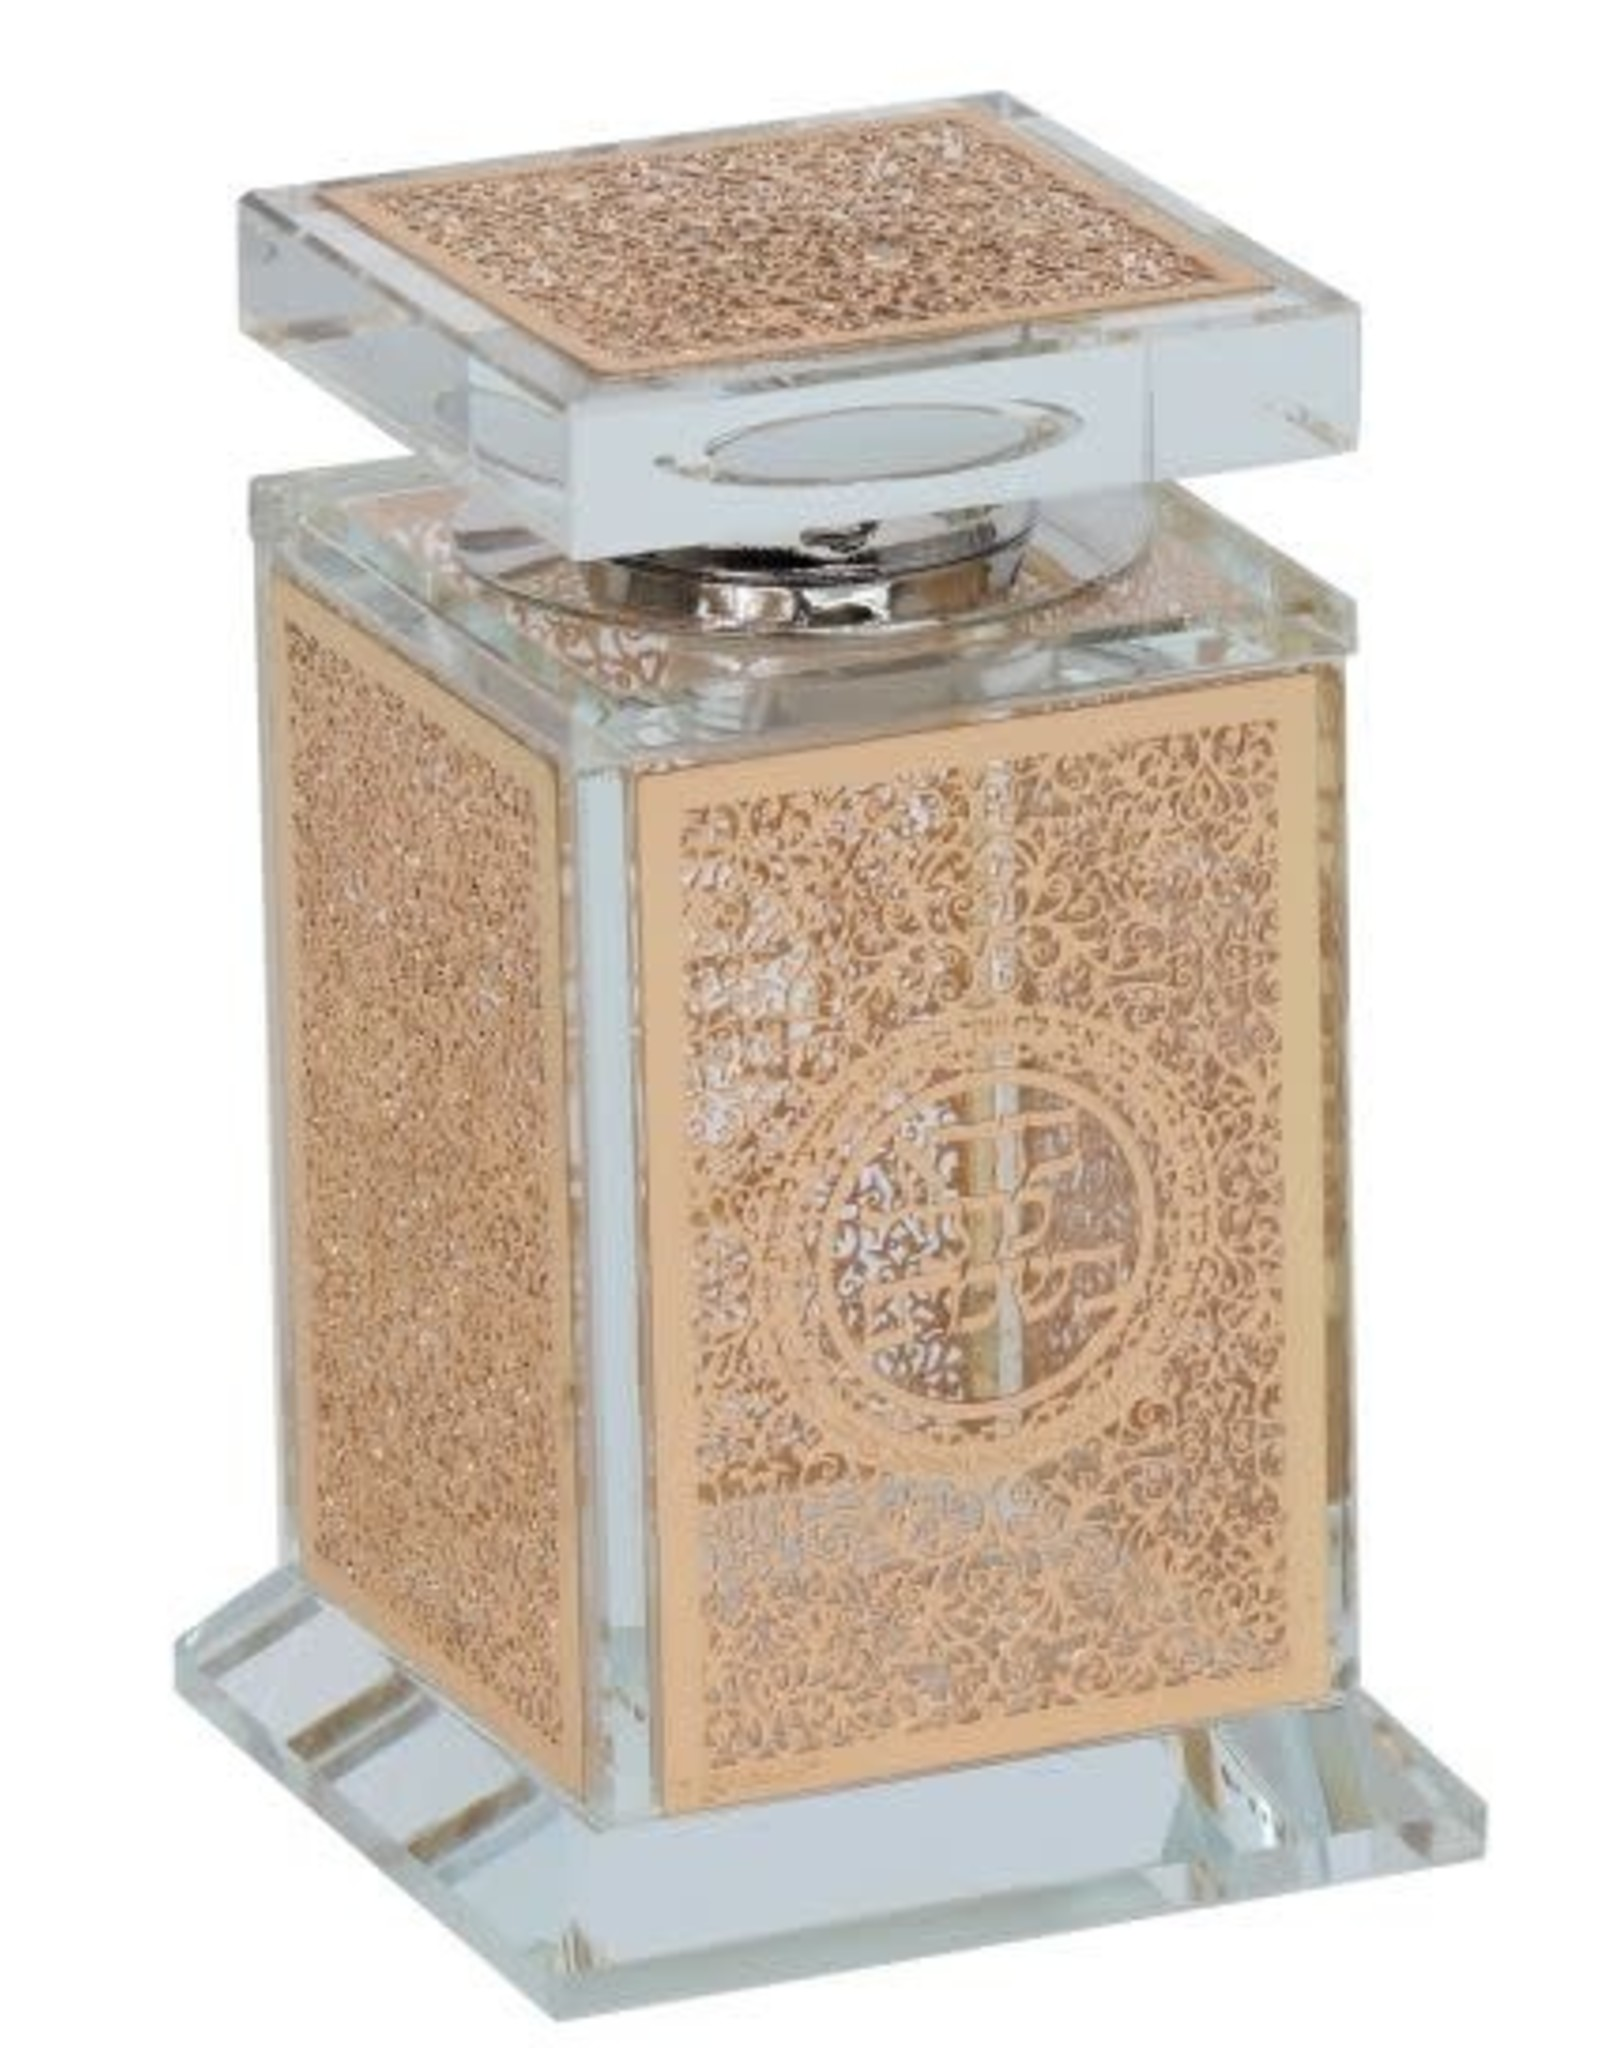 161018 Crystal Besomim Holder With Gold Plate 2x2x4